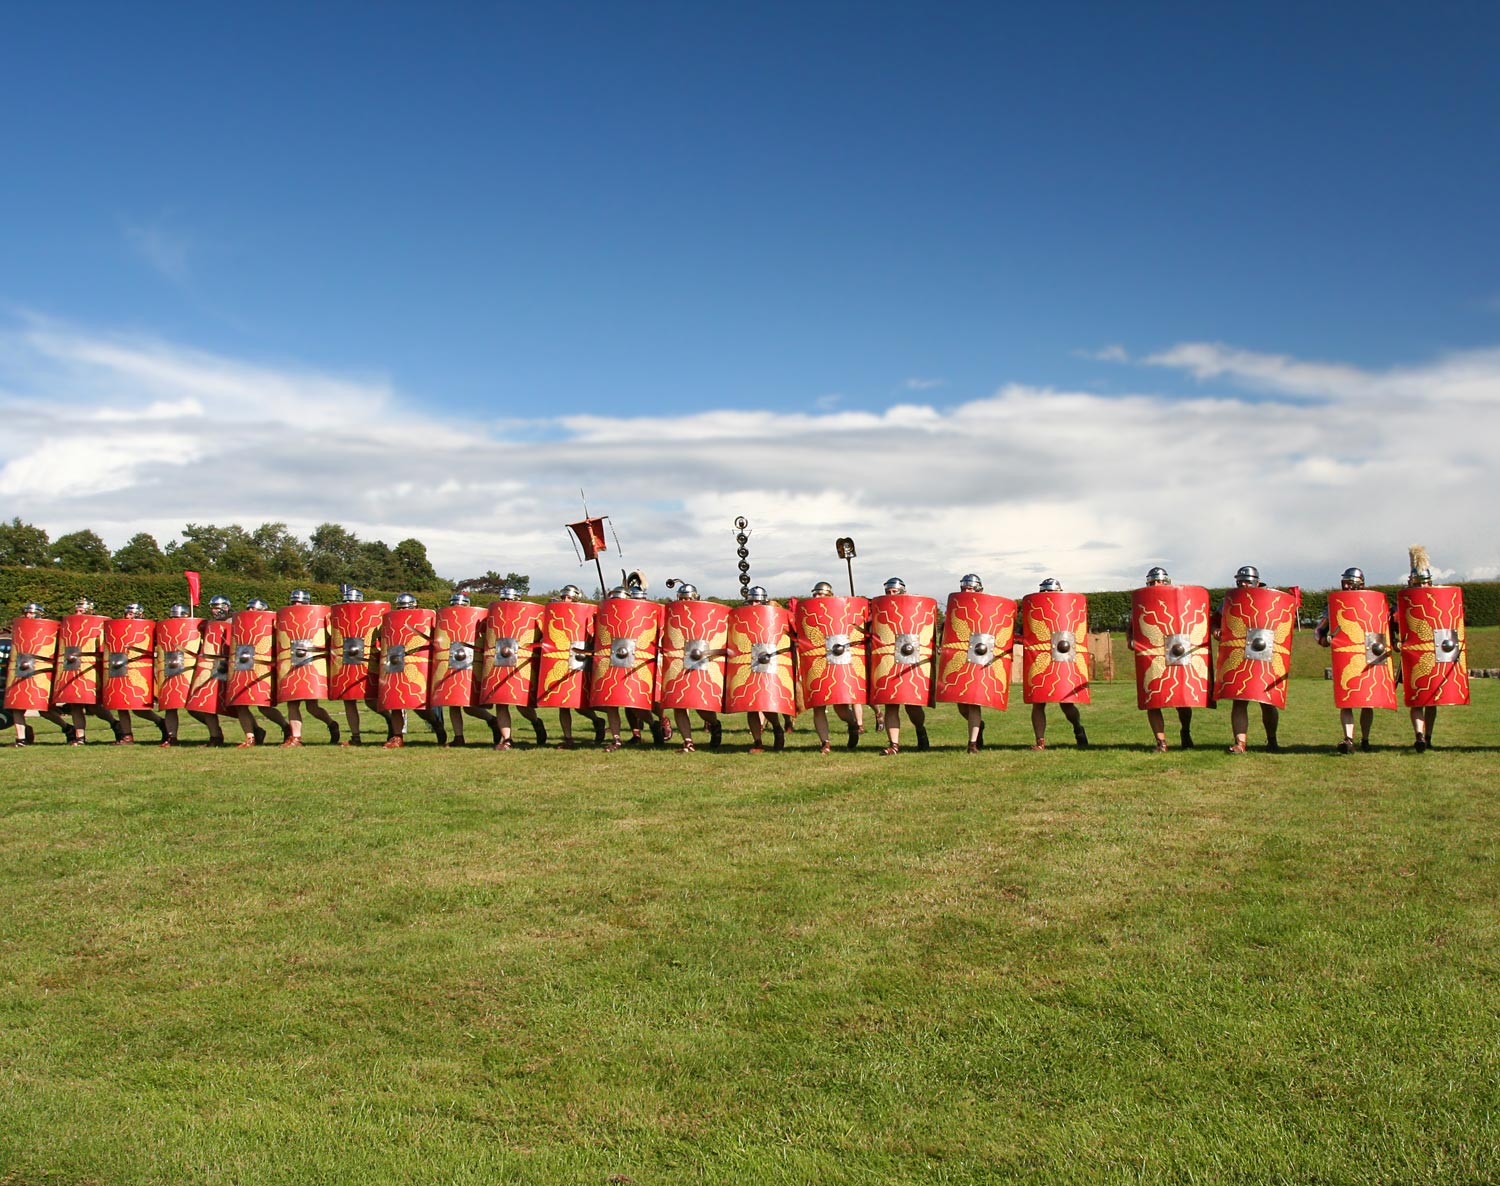 Fig 3. Partially coherent Roman legionaries, following different orders: while at the left of the image the Roman legionaires are tightly packed, the ones at the right seem to have orders of forming groups of two. Photo: iStock.com/Sue Colvil